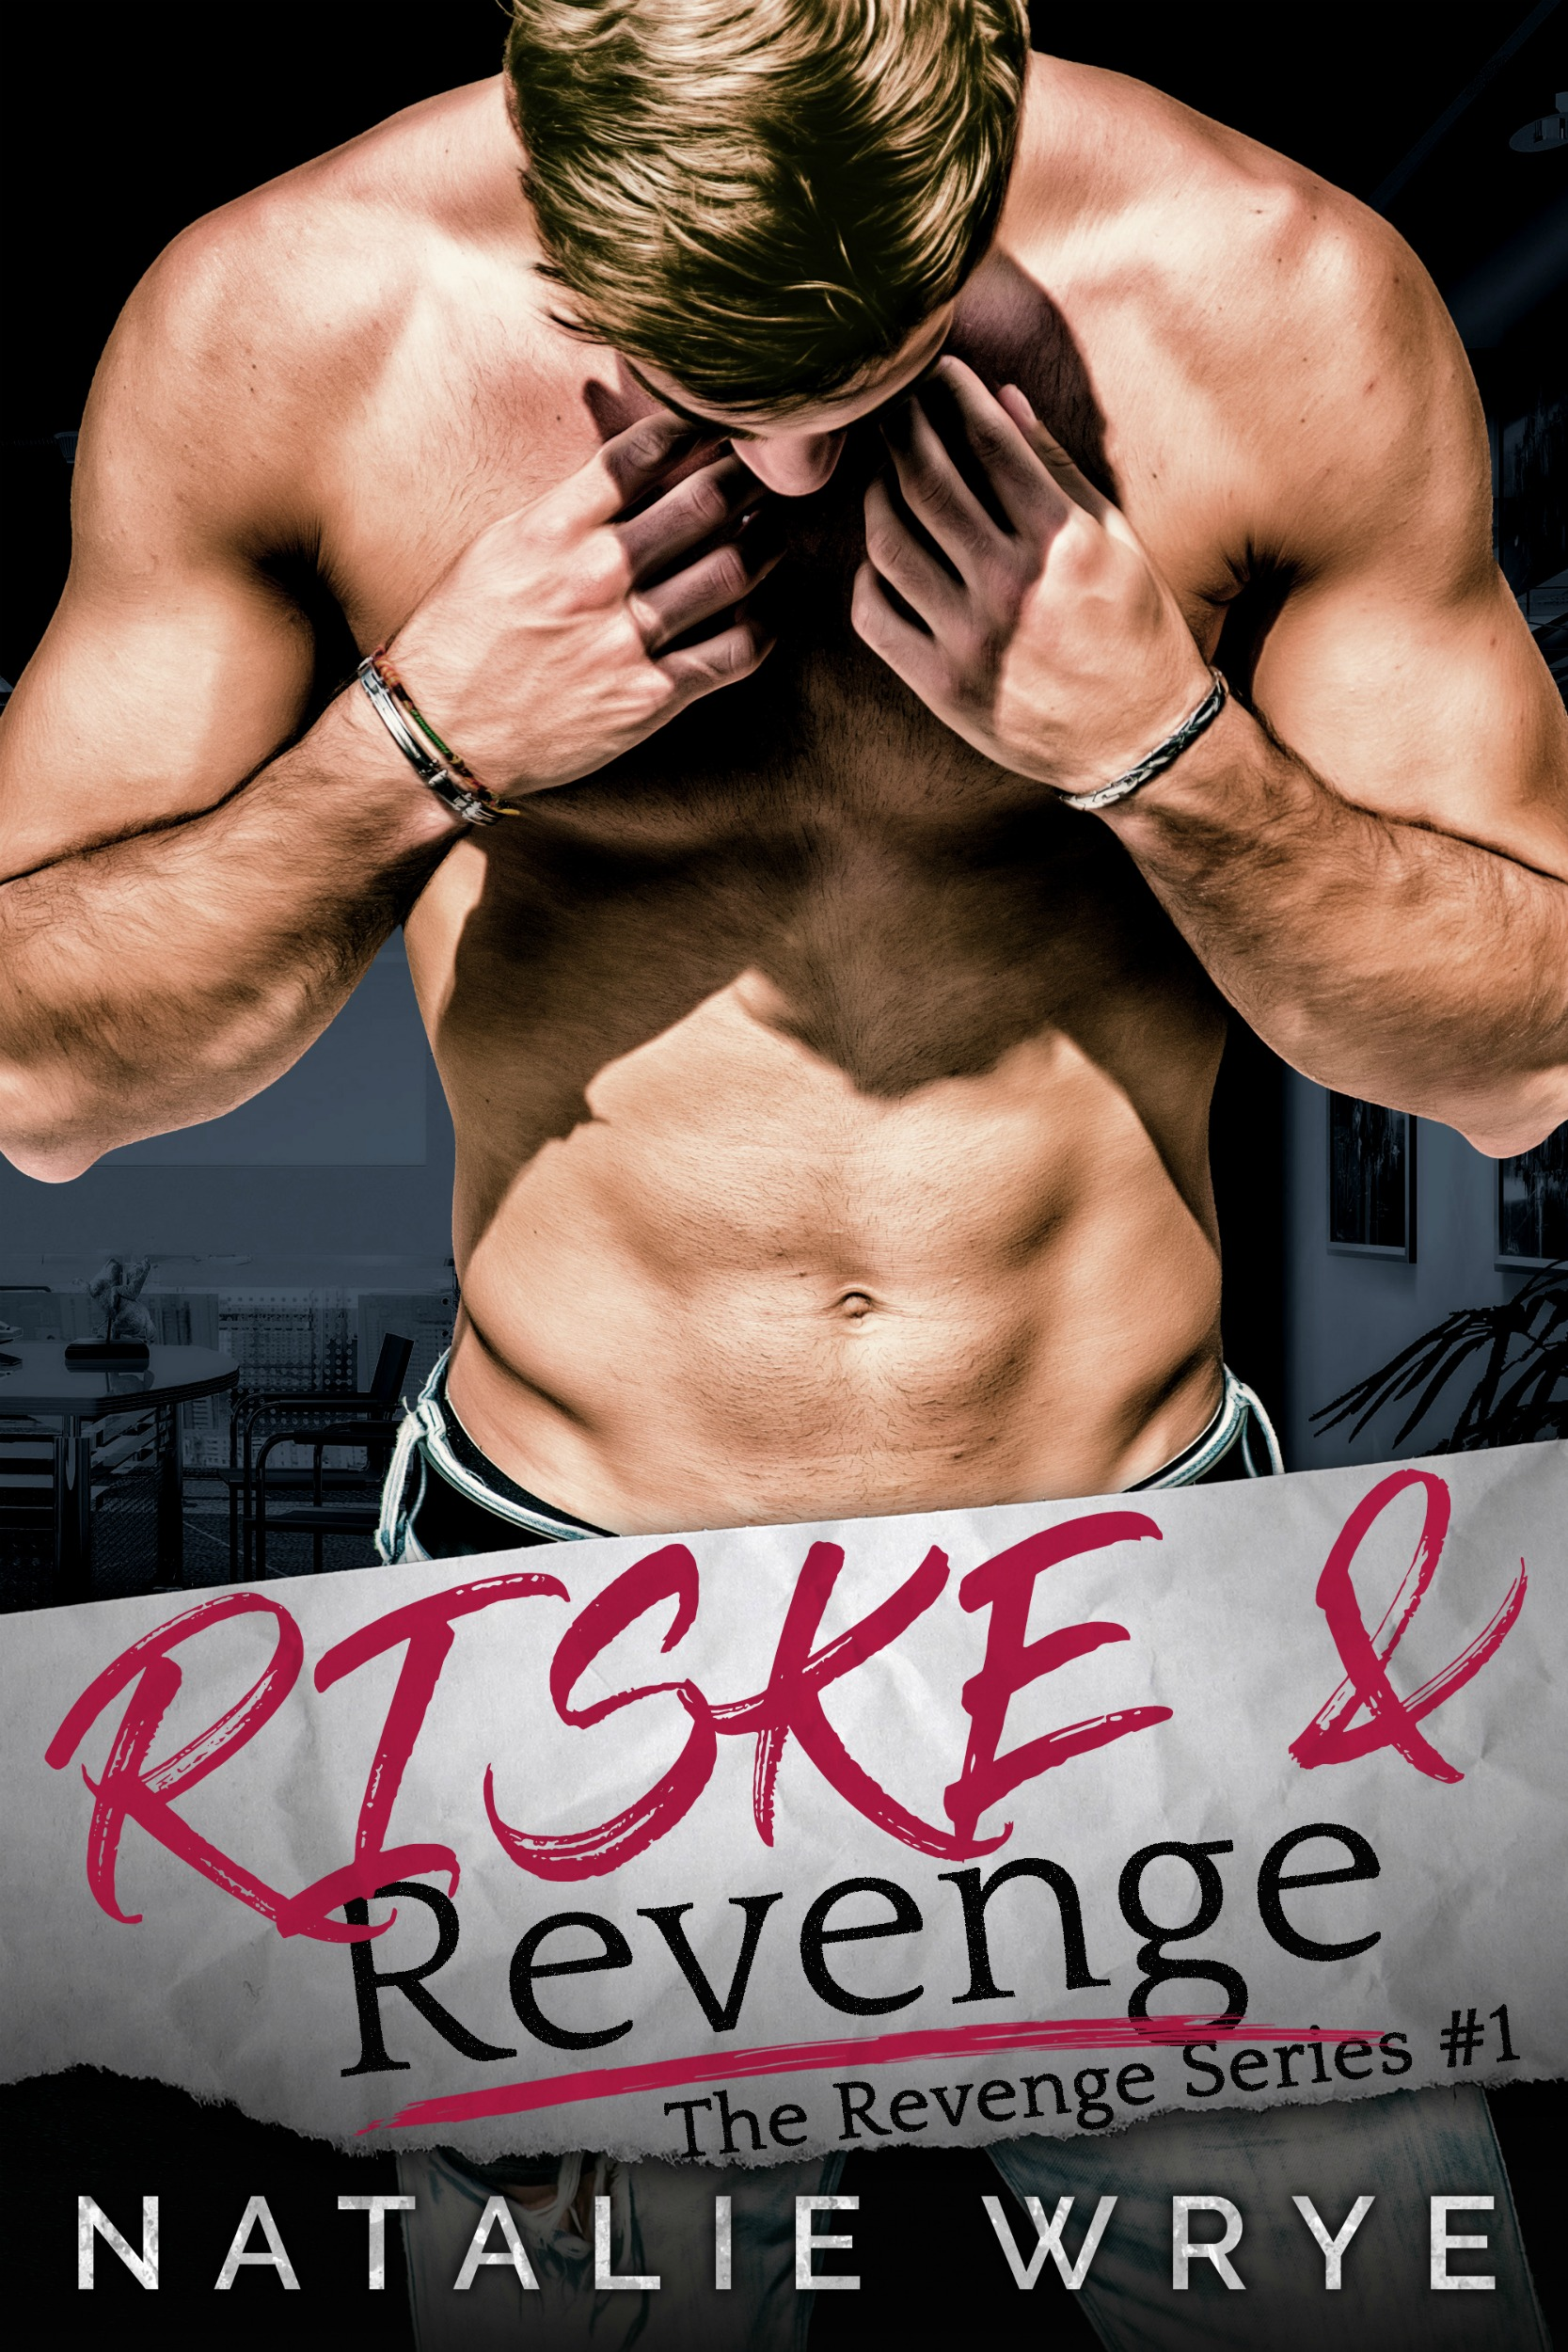 Review: Riske and Revenge by Natalie Wrye